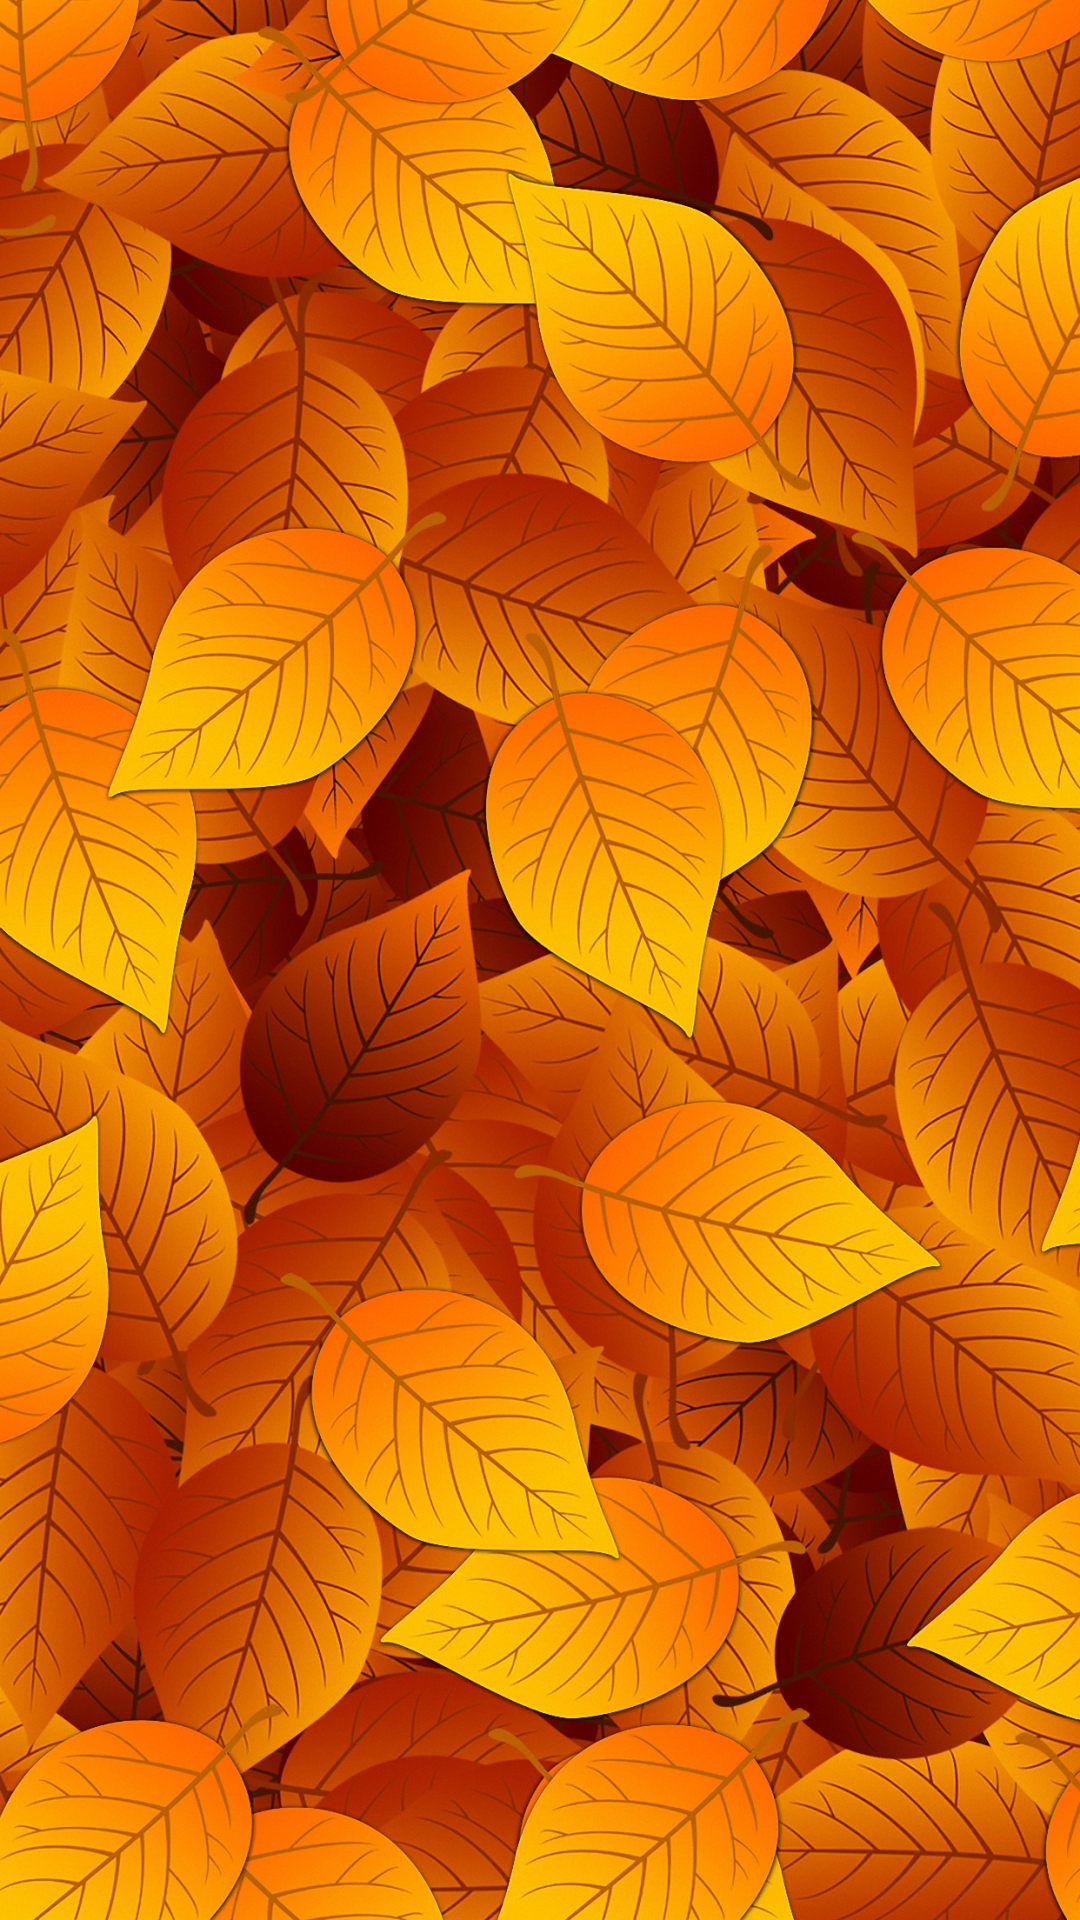 Desktop Wallpaper Fall Leaves Oto 241 O Fondos De Pantalla Para Android E Iphone Fondos